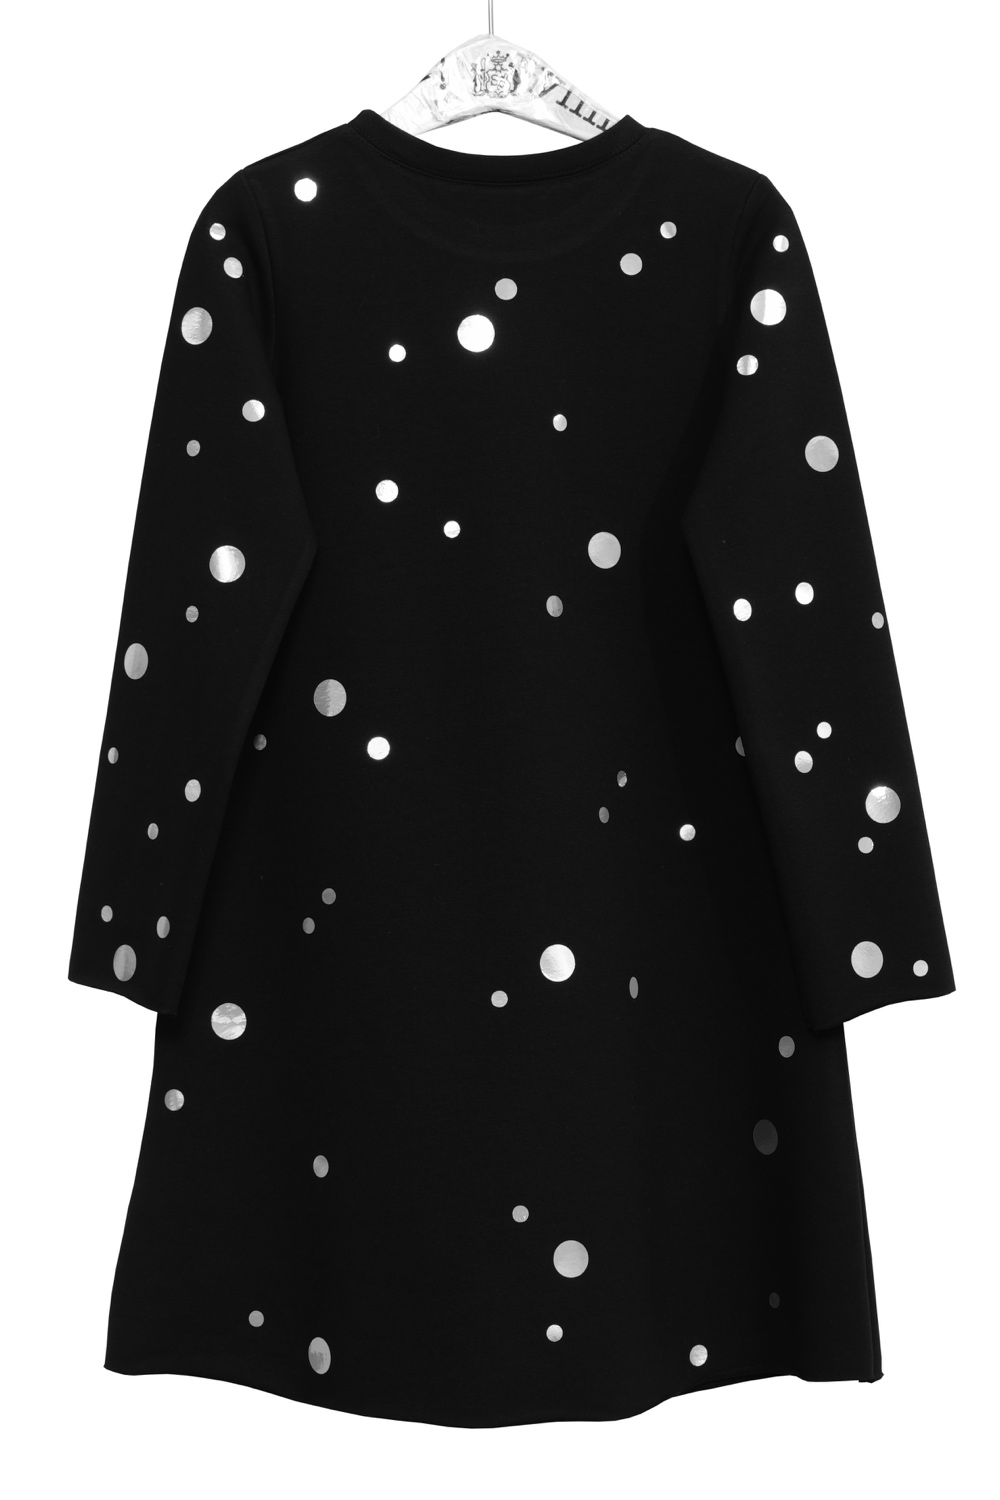 Holo Dots Dress Kids - 0